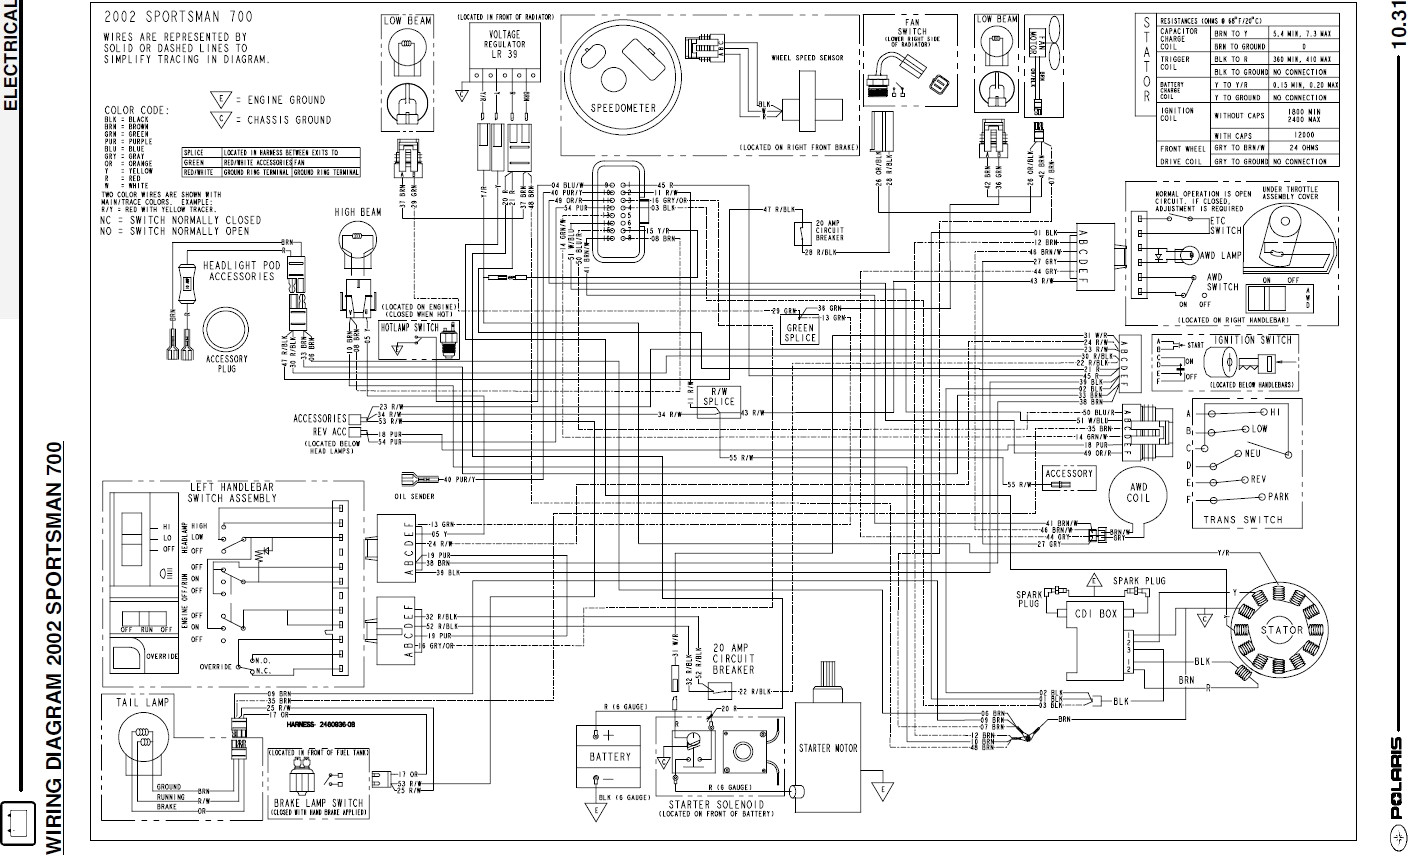 1999 Polaris Starter Diagram Wiring Schematic Caravelle Boat Fuse Box For Wiring Diagram Schematics